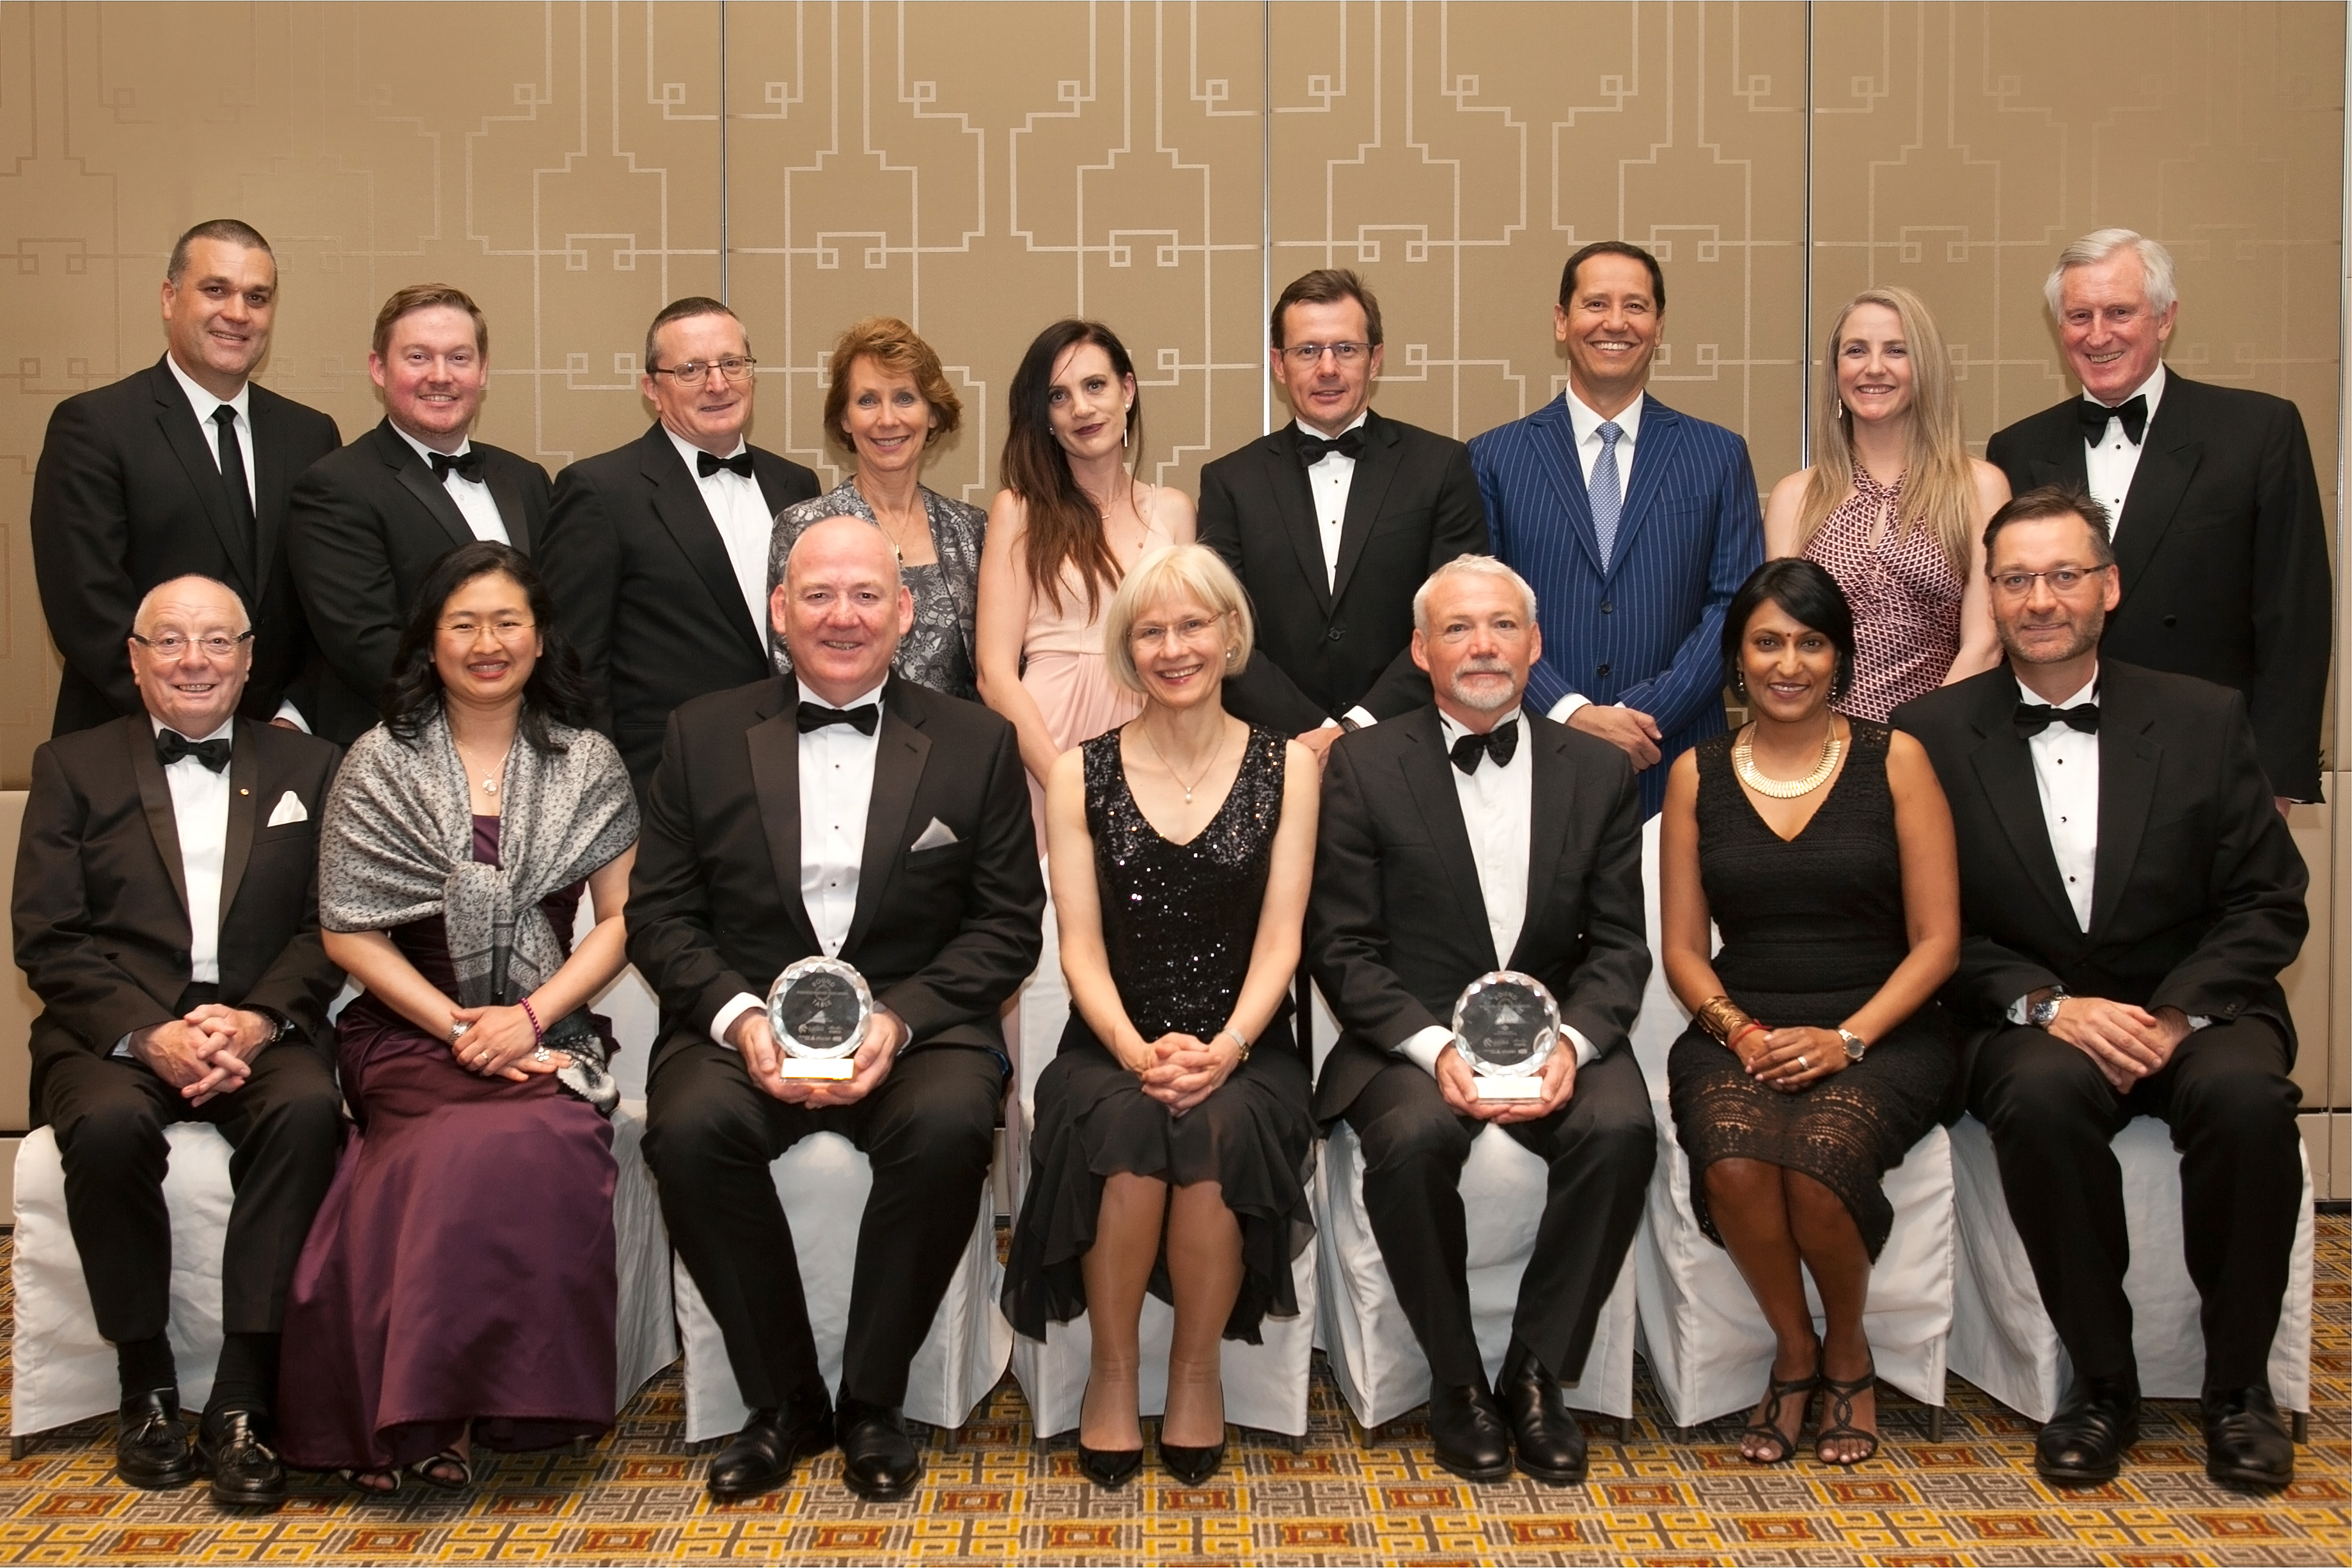 Group photo of winners at the 2016 B/HERT awards in Melbourne